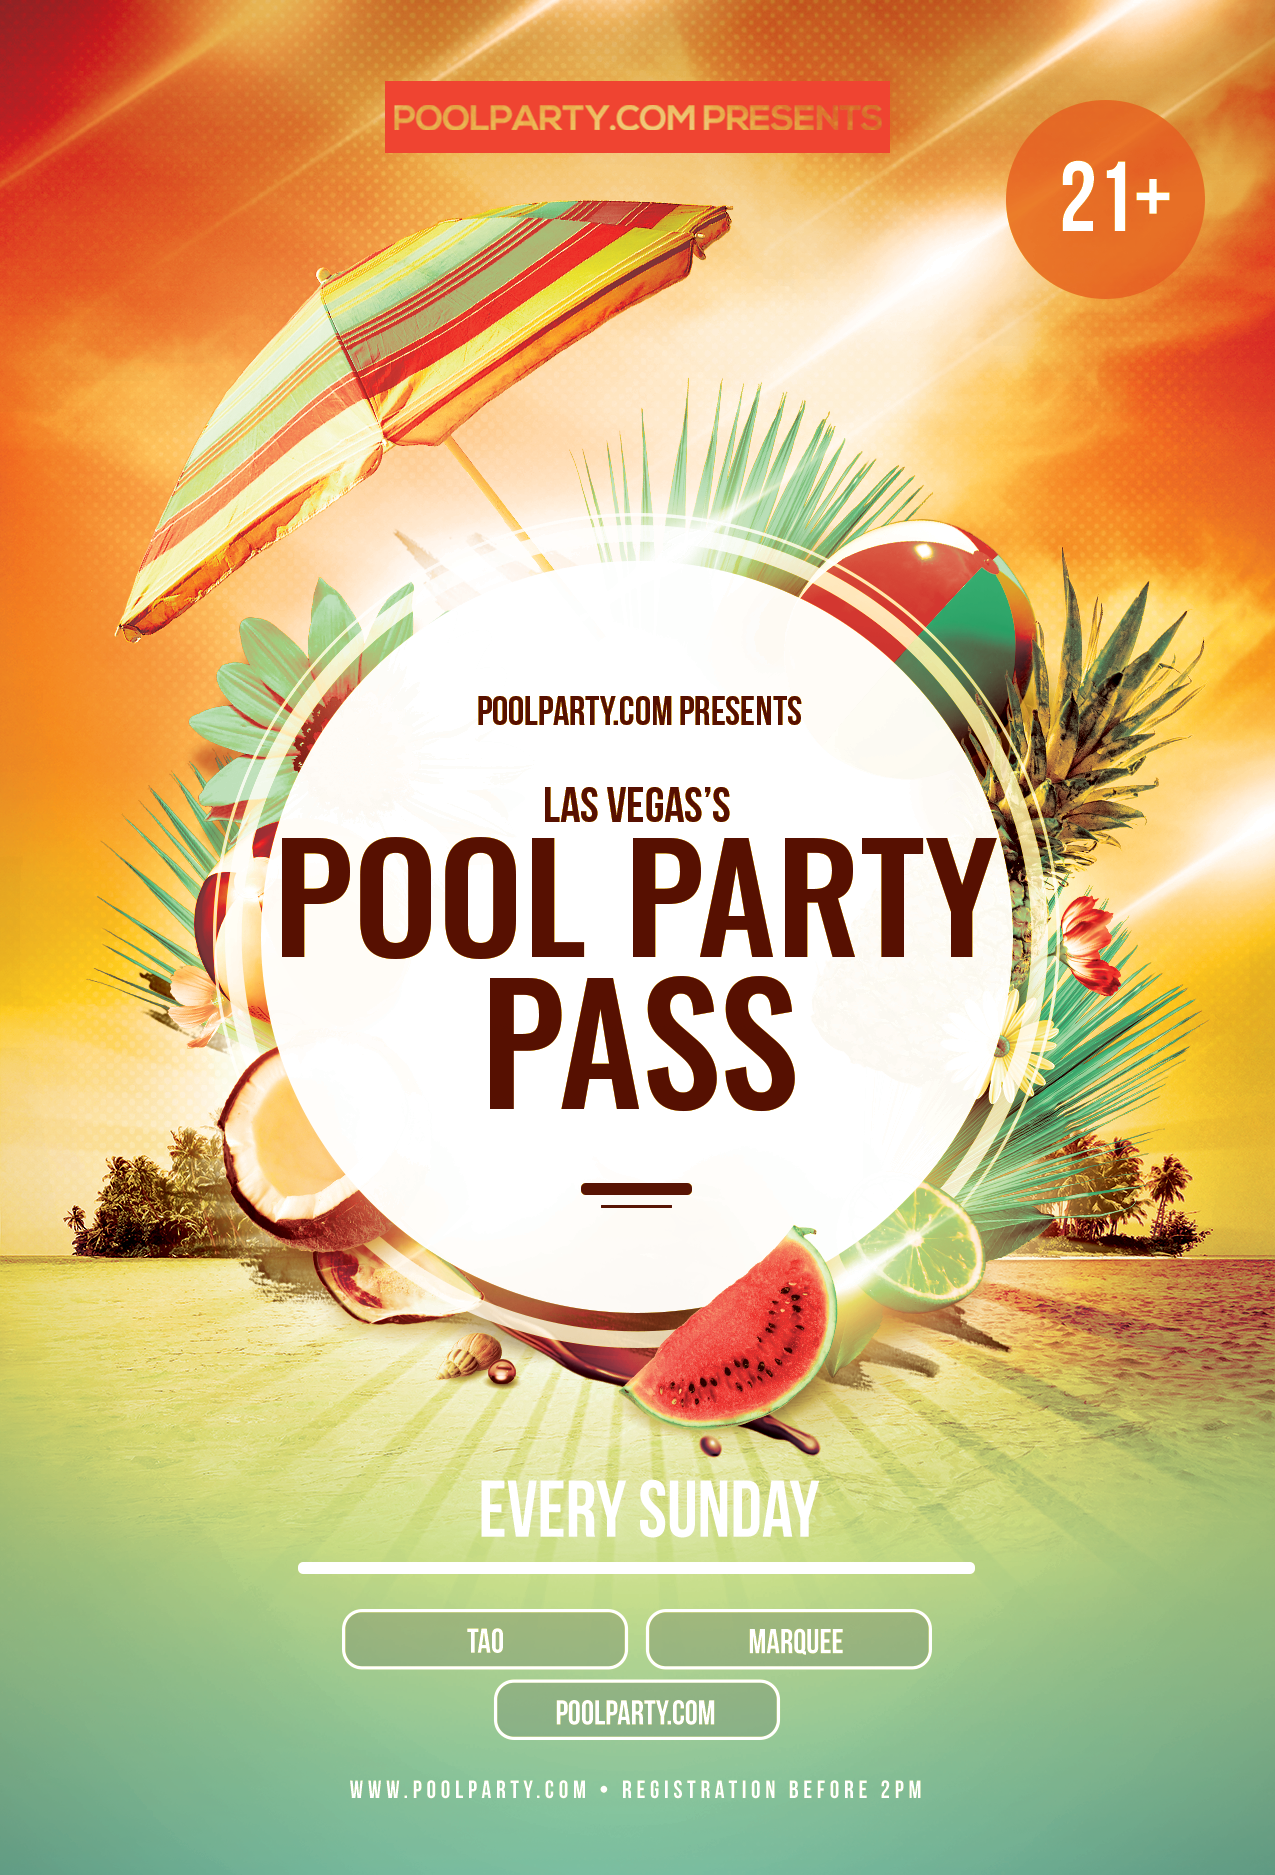 Sunday's Pool Party Pass (June 28th 2020)